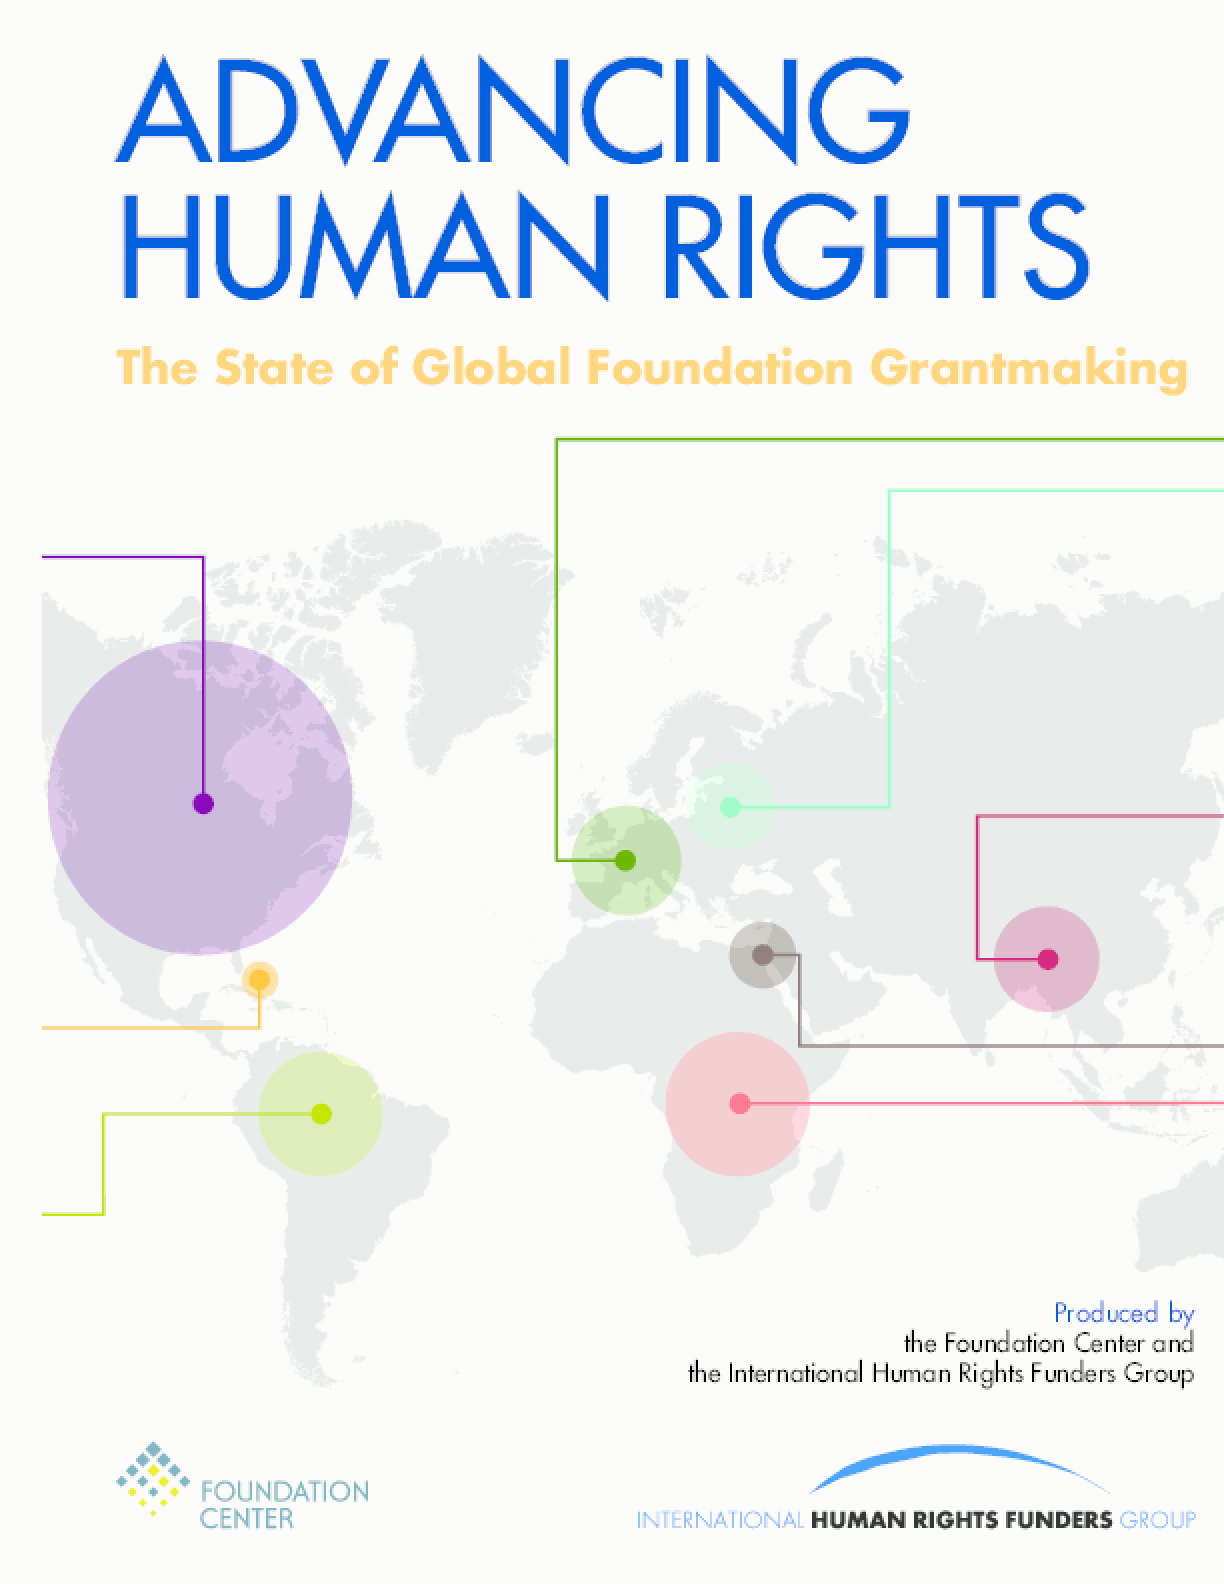 Advancing Human Rights: The State of Global Foundation Grantmaking